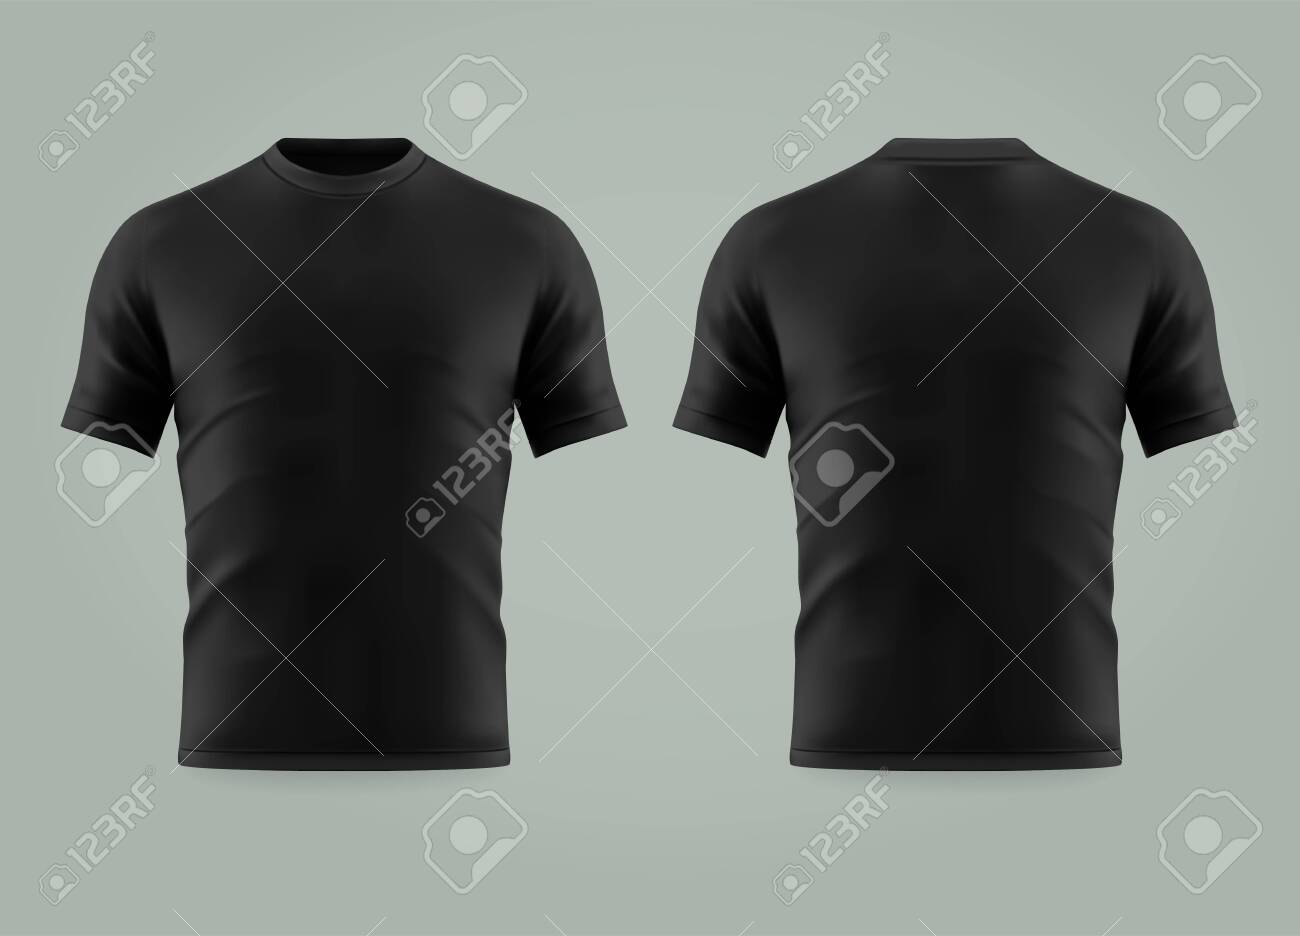 Set of isolated black t-shirt or 3d cloth with short sleeve and u neck. Realistic empty cotton t shirt. Man and woman, male and female blank or empty uniform. Men and women wearing mockup - 124230308